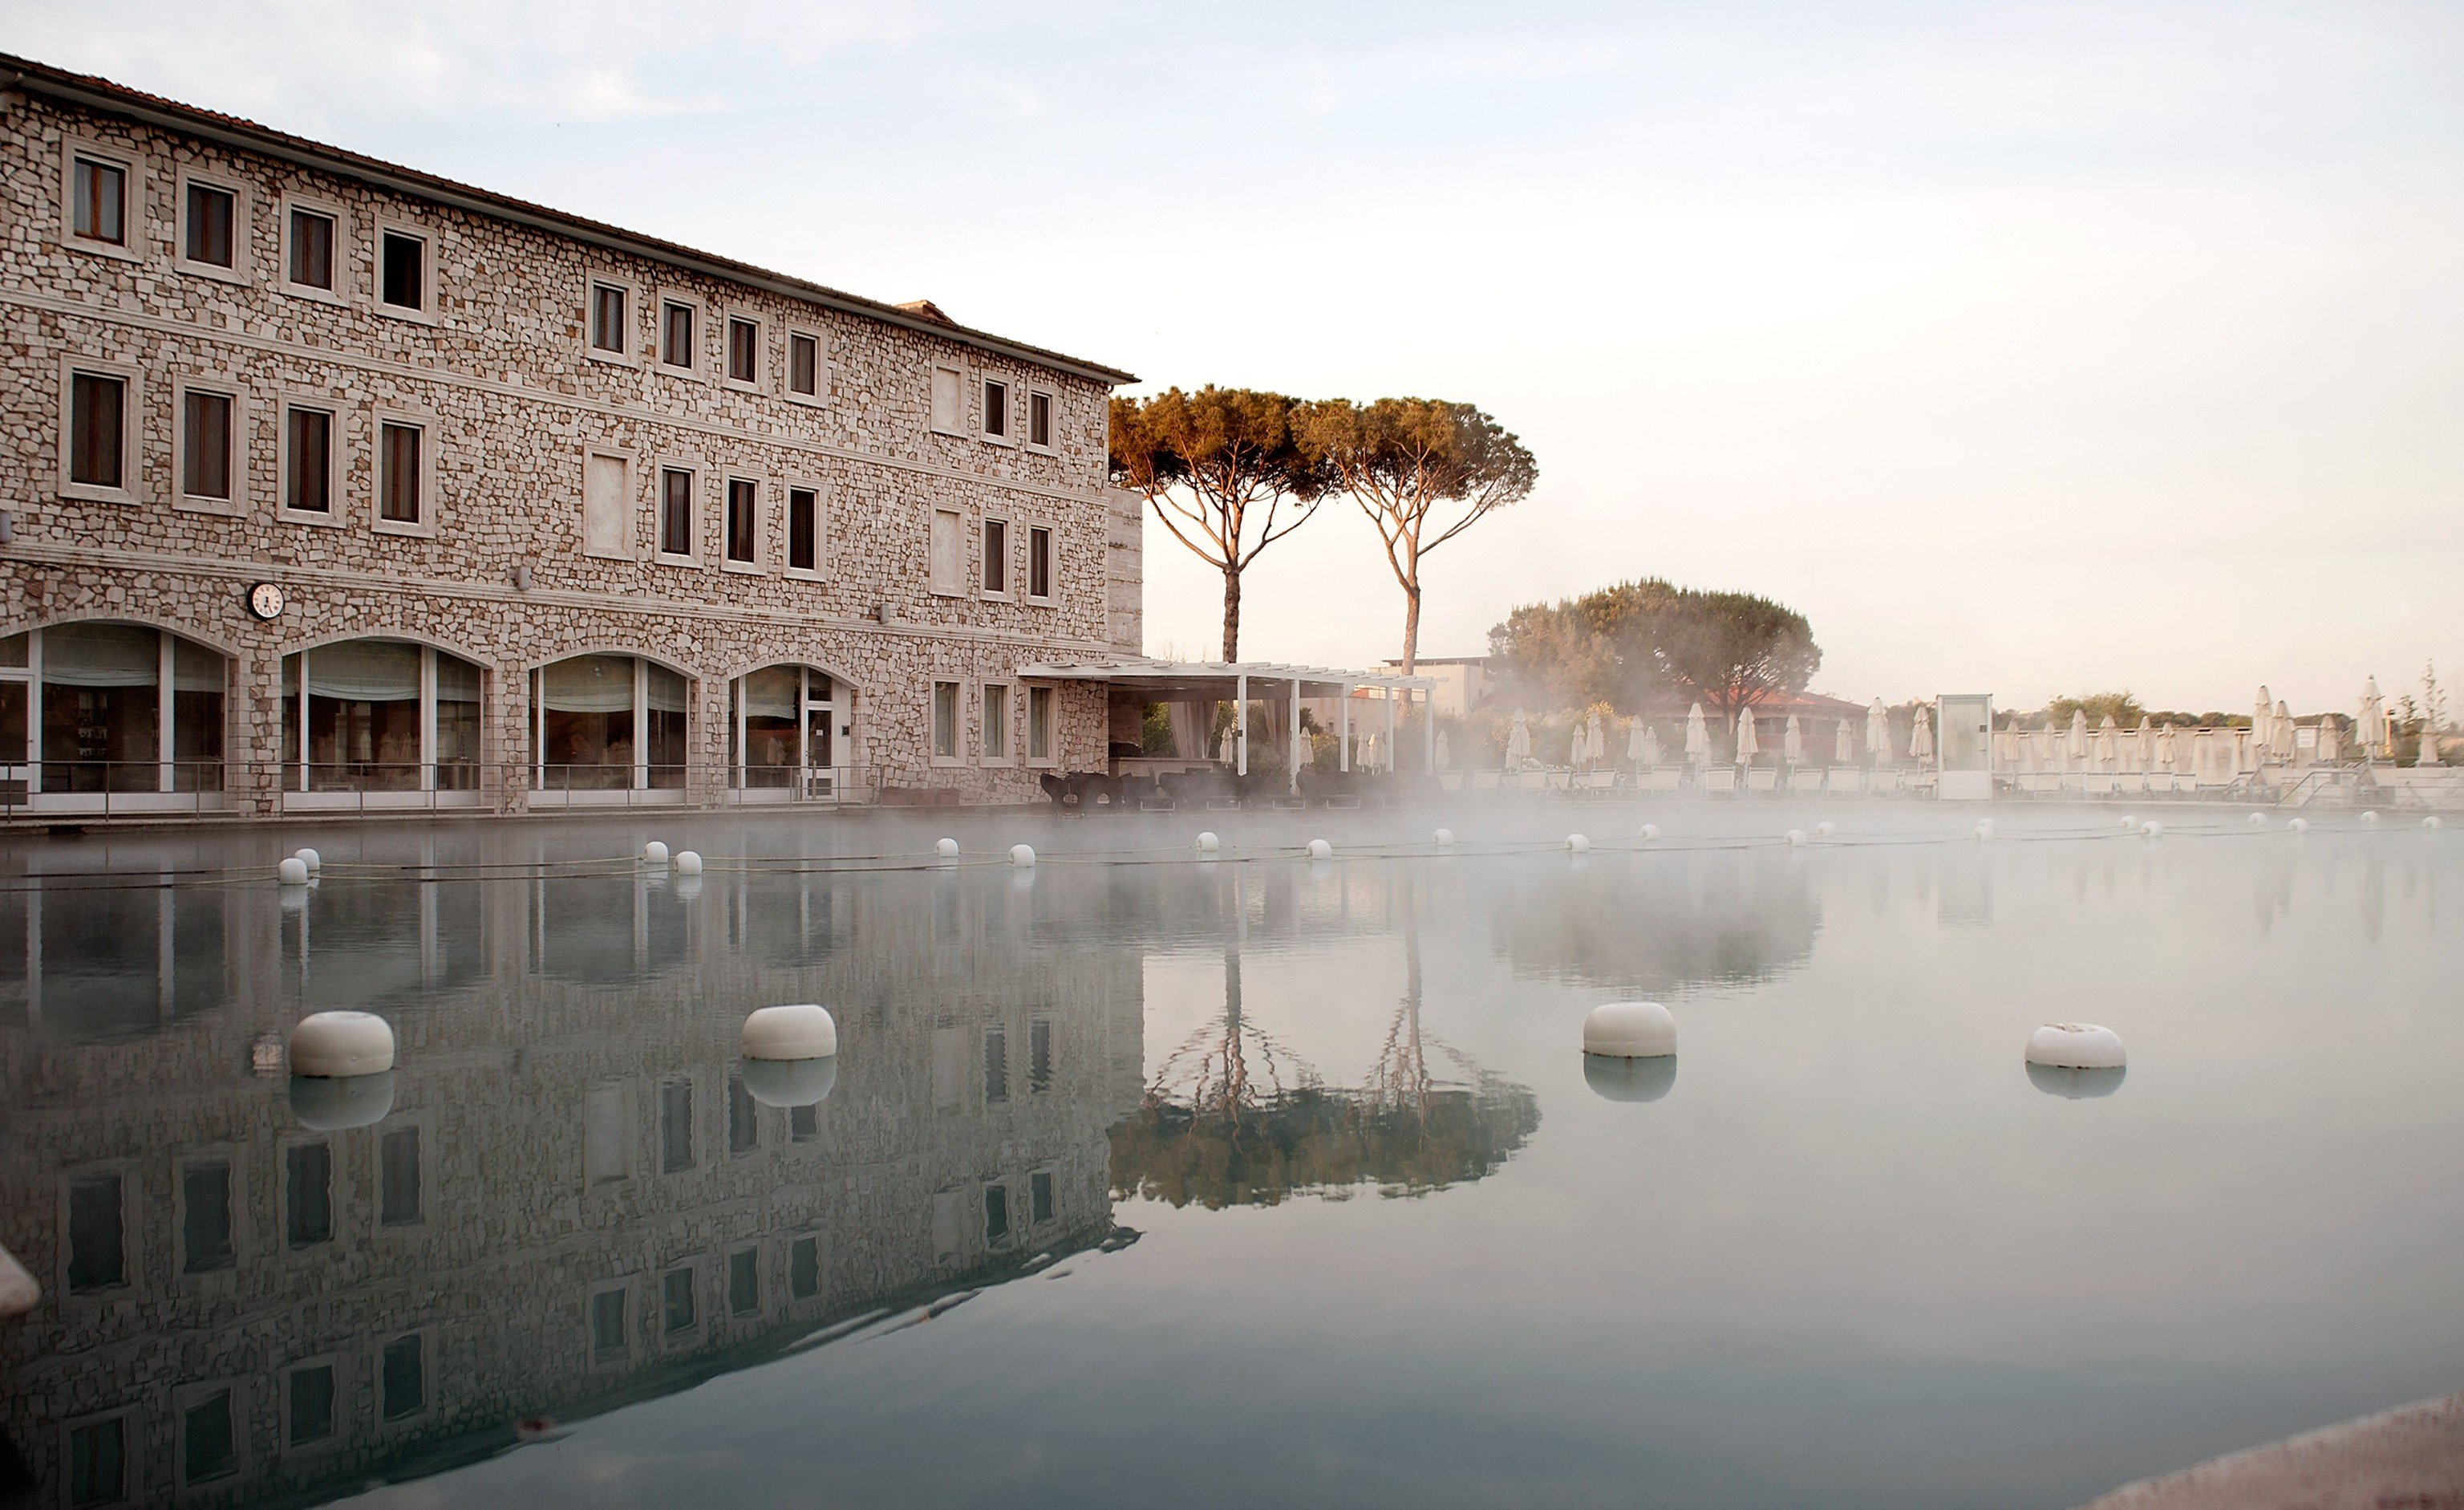 Hotels sky outdoor reflection water morning Winter waterway palace